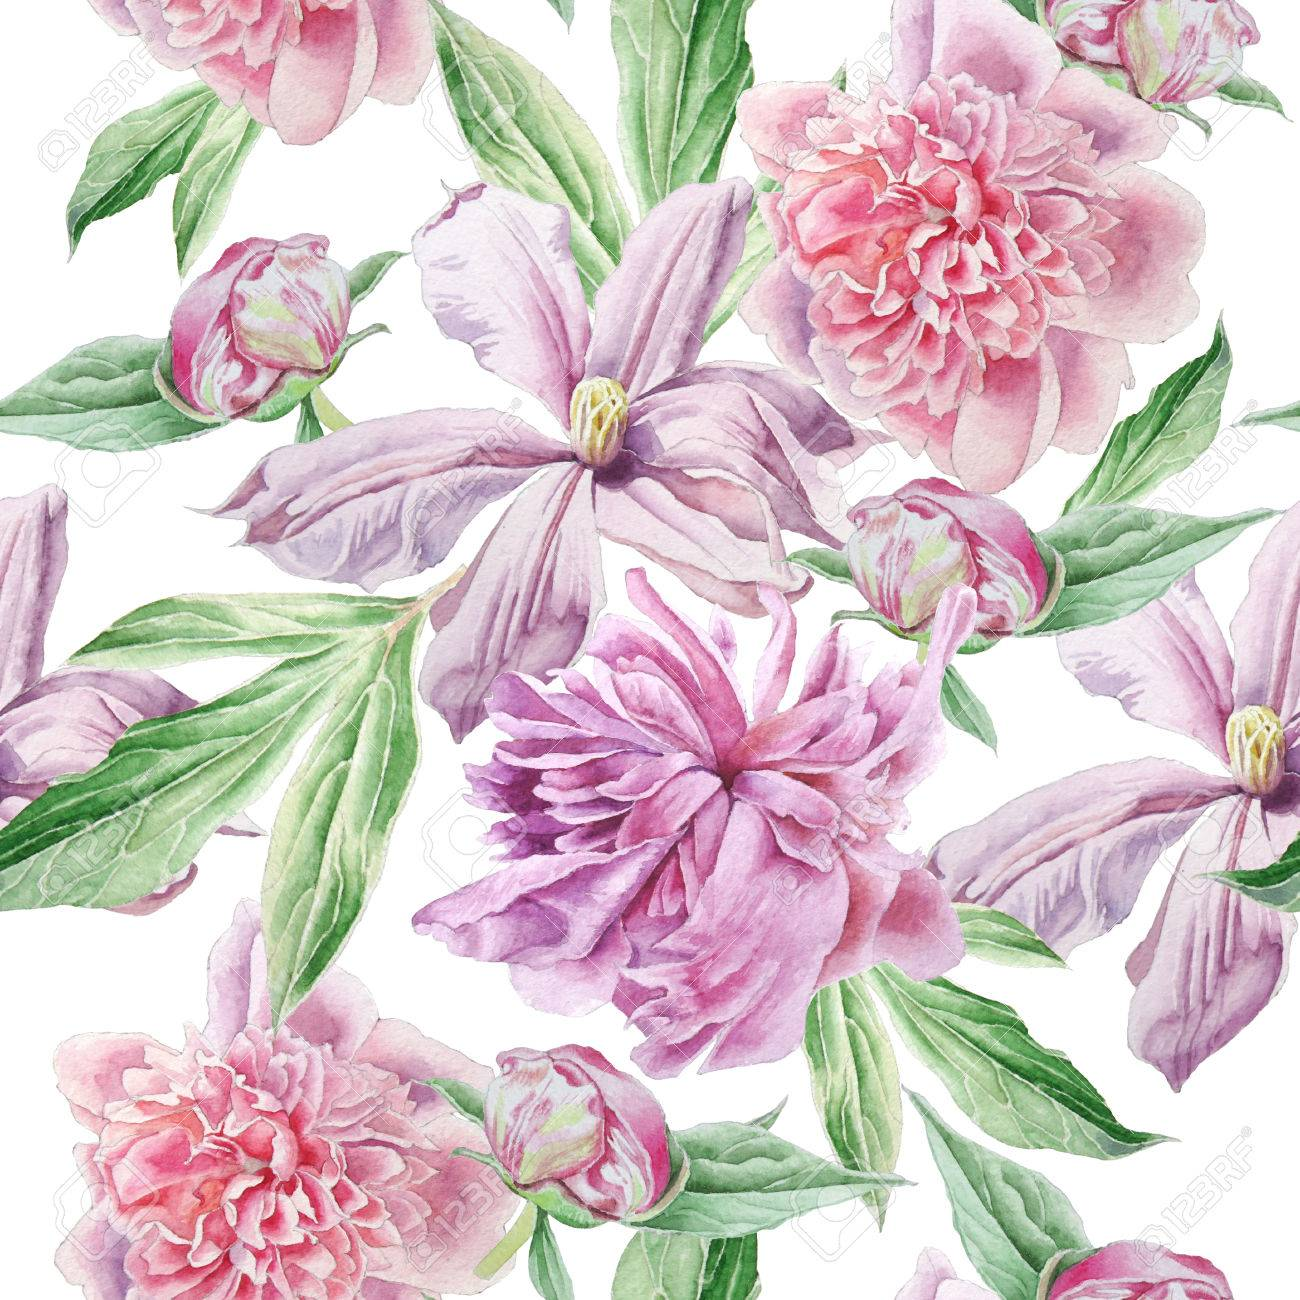 Seamless pattern with spring flowers peony clematis watercolor seamless pattern with spring flowers peony clematis watercolor stock photo 74333476 mightylinksfo